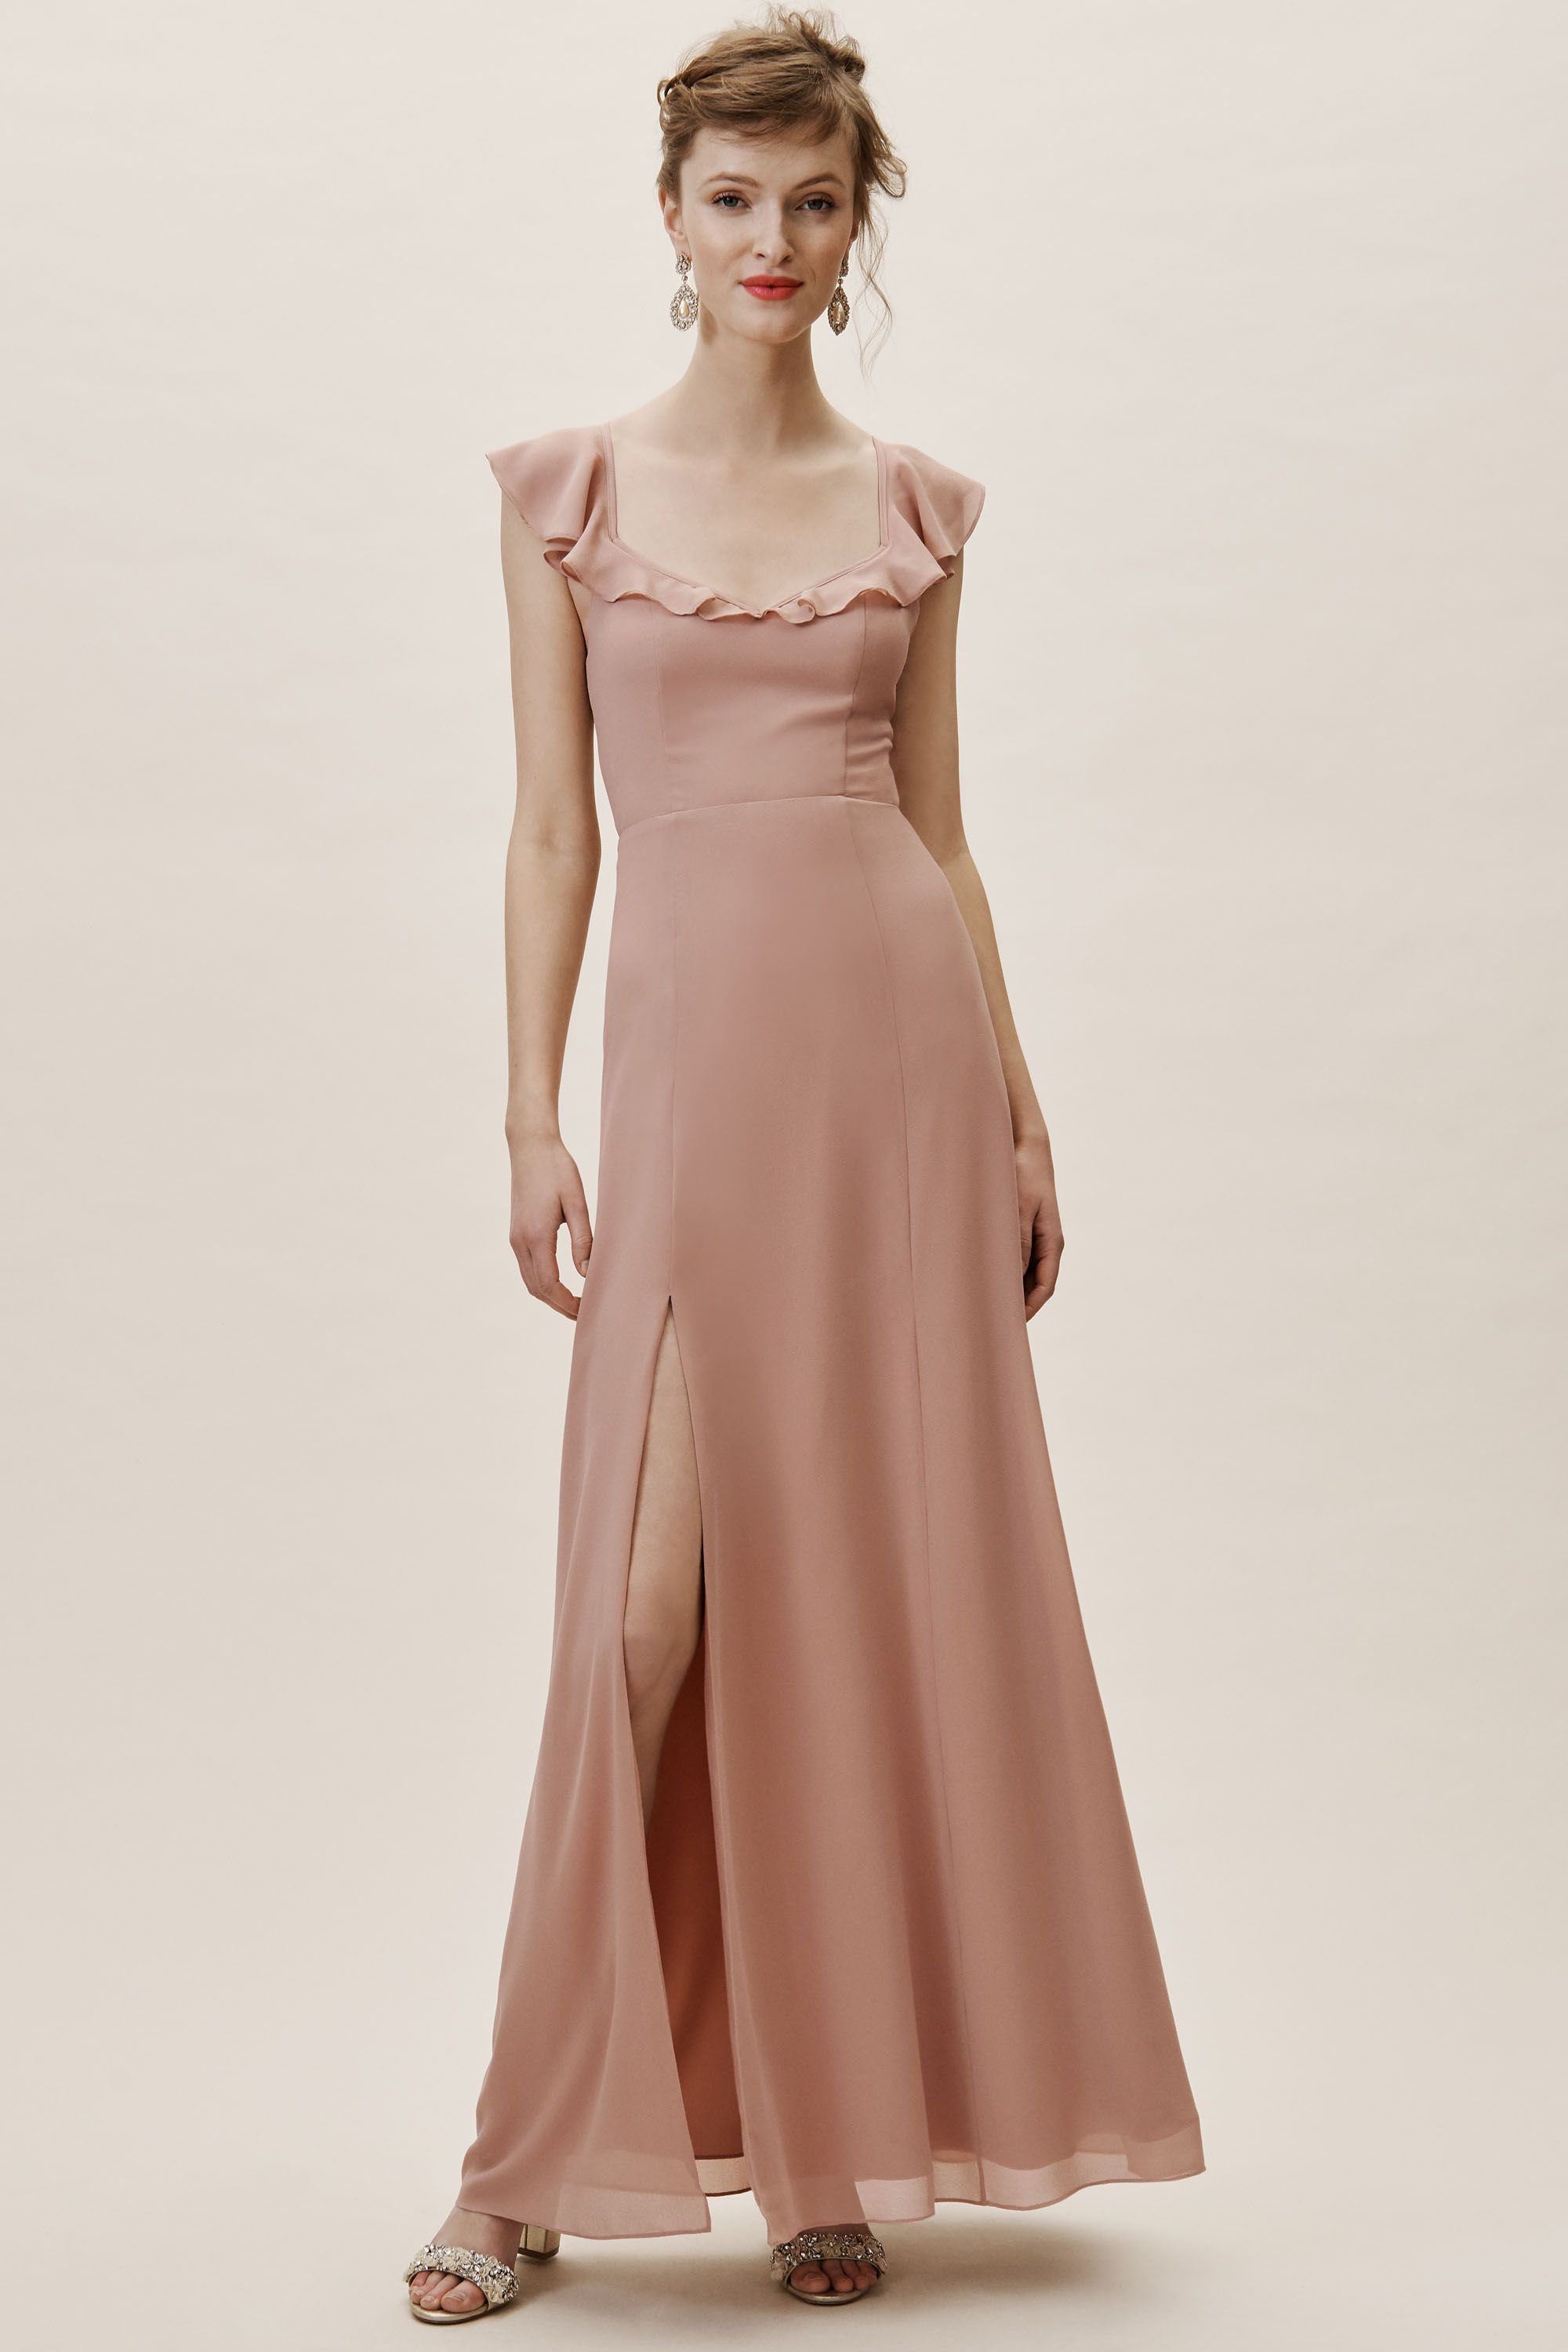 2b82f120867 Diana Dress Whipped Apricot in Bridesmaids   Bridal Party